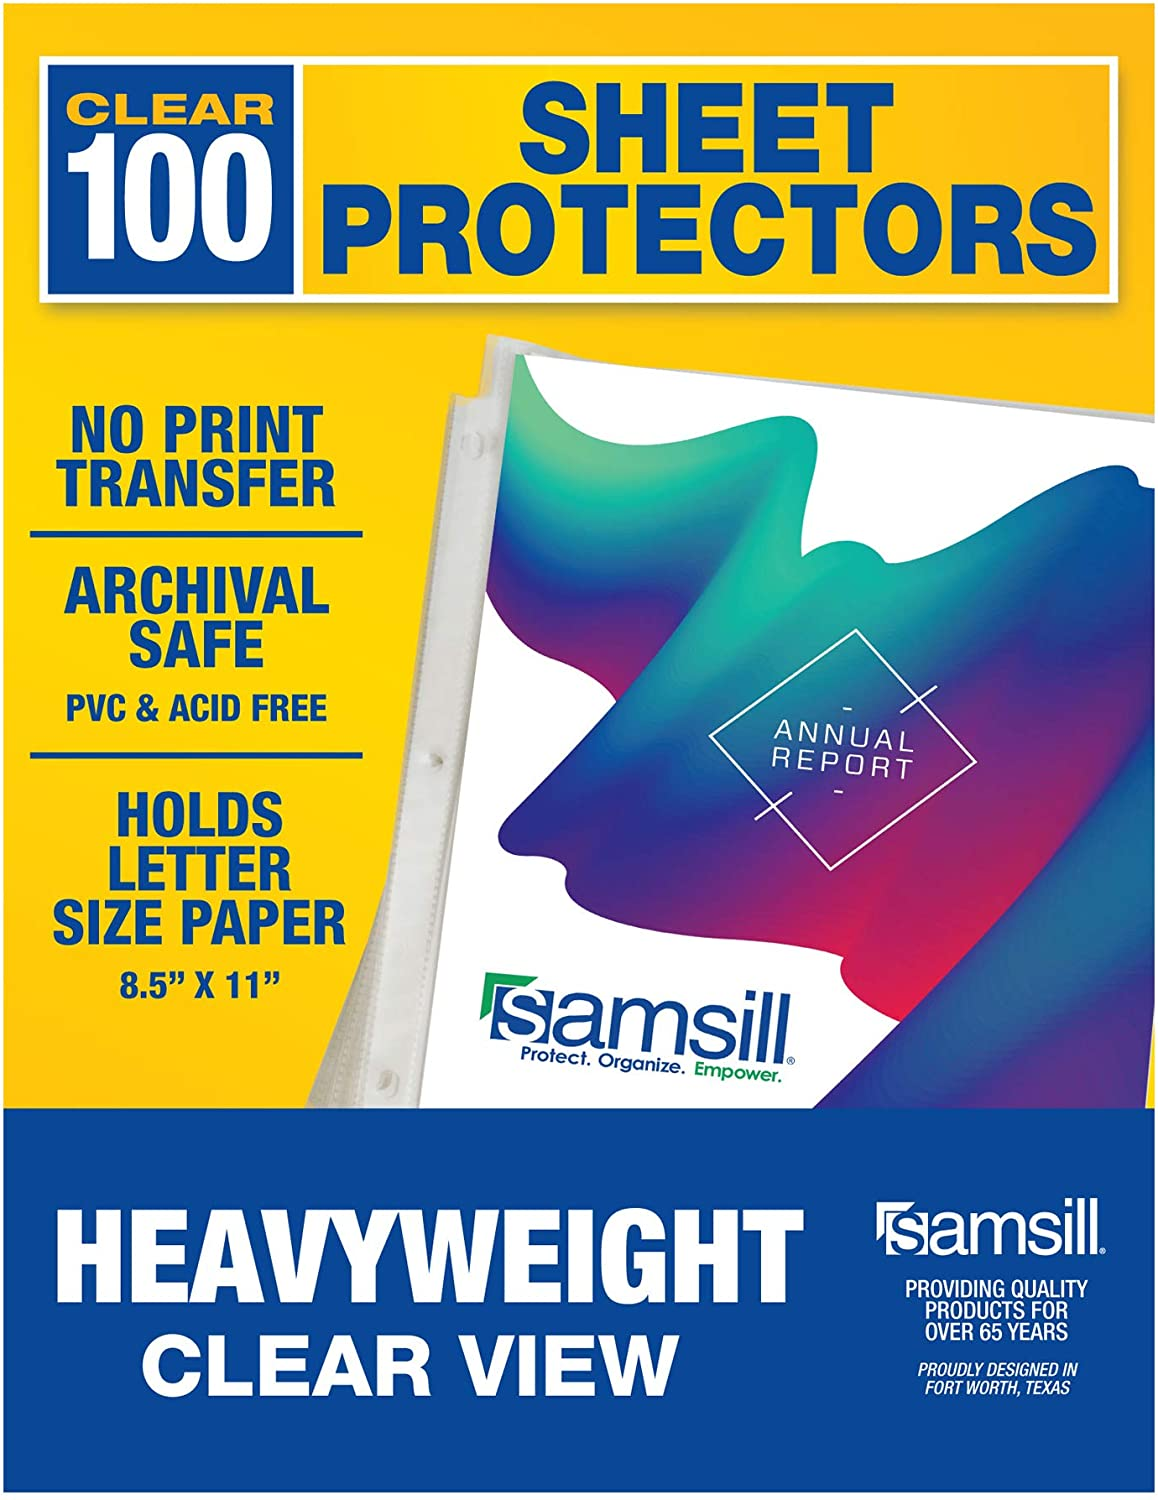 Samsill 100 Clear Heavyweight Sheet Protectors, Reinforced 3 Hole Design Plastic Page Protectors, Archival Safe, Top Load for 8.5 x 11 Inch Sheets, Box of 100